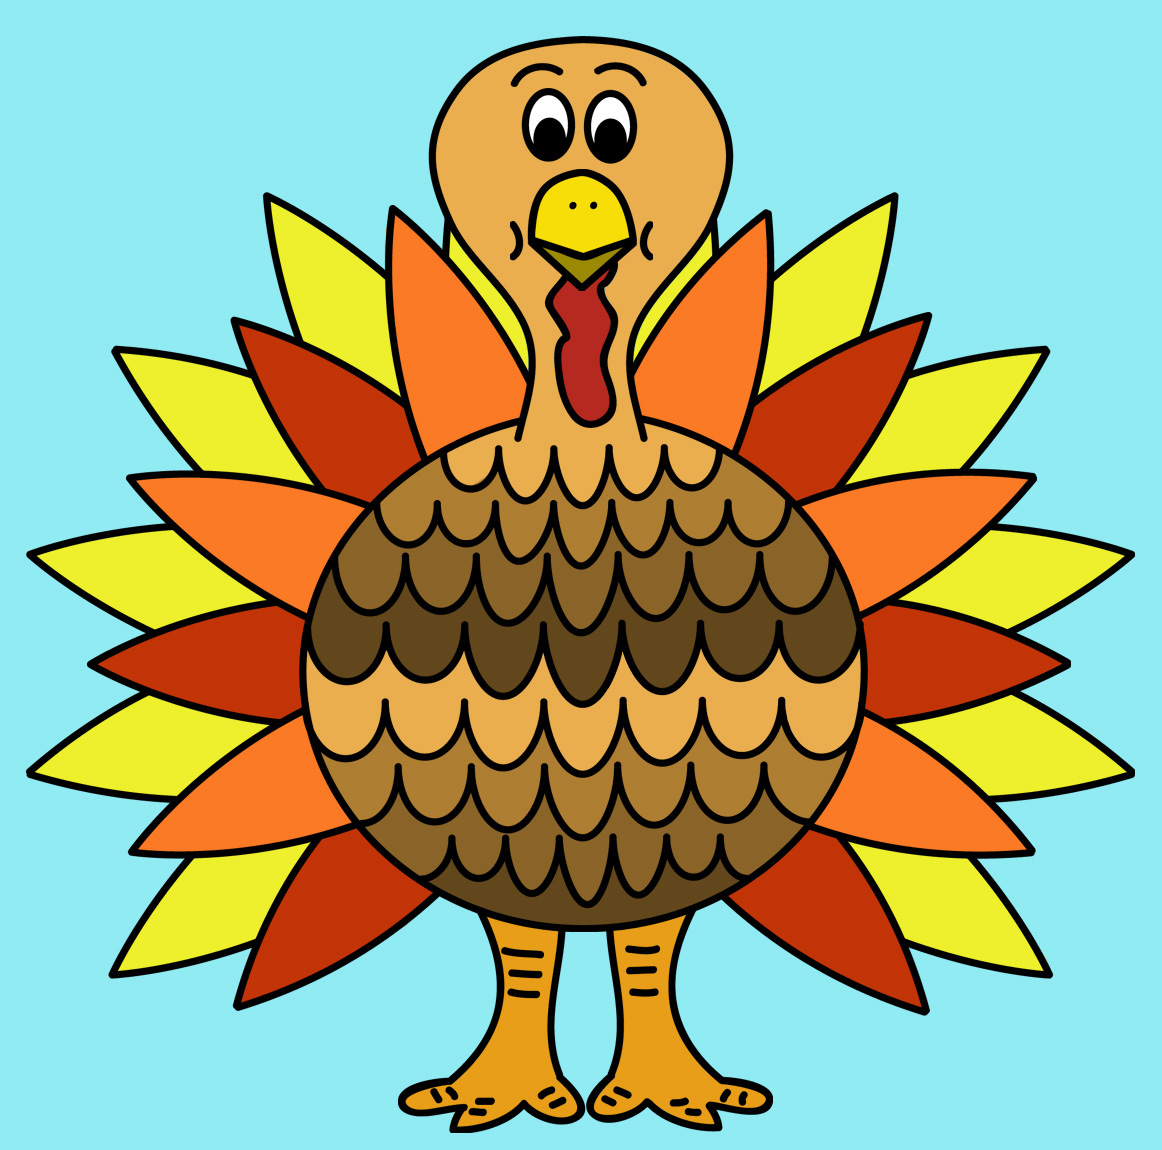 Free Thanksgiving Turkey Clipart Images-Free Thanksgiving Turkey Clipart Images-3